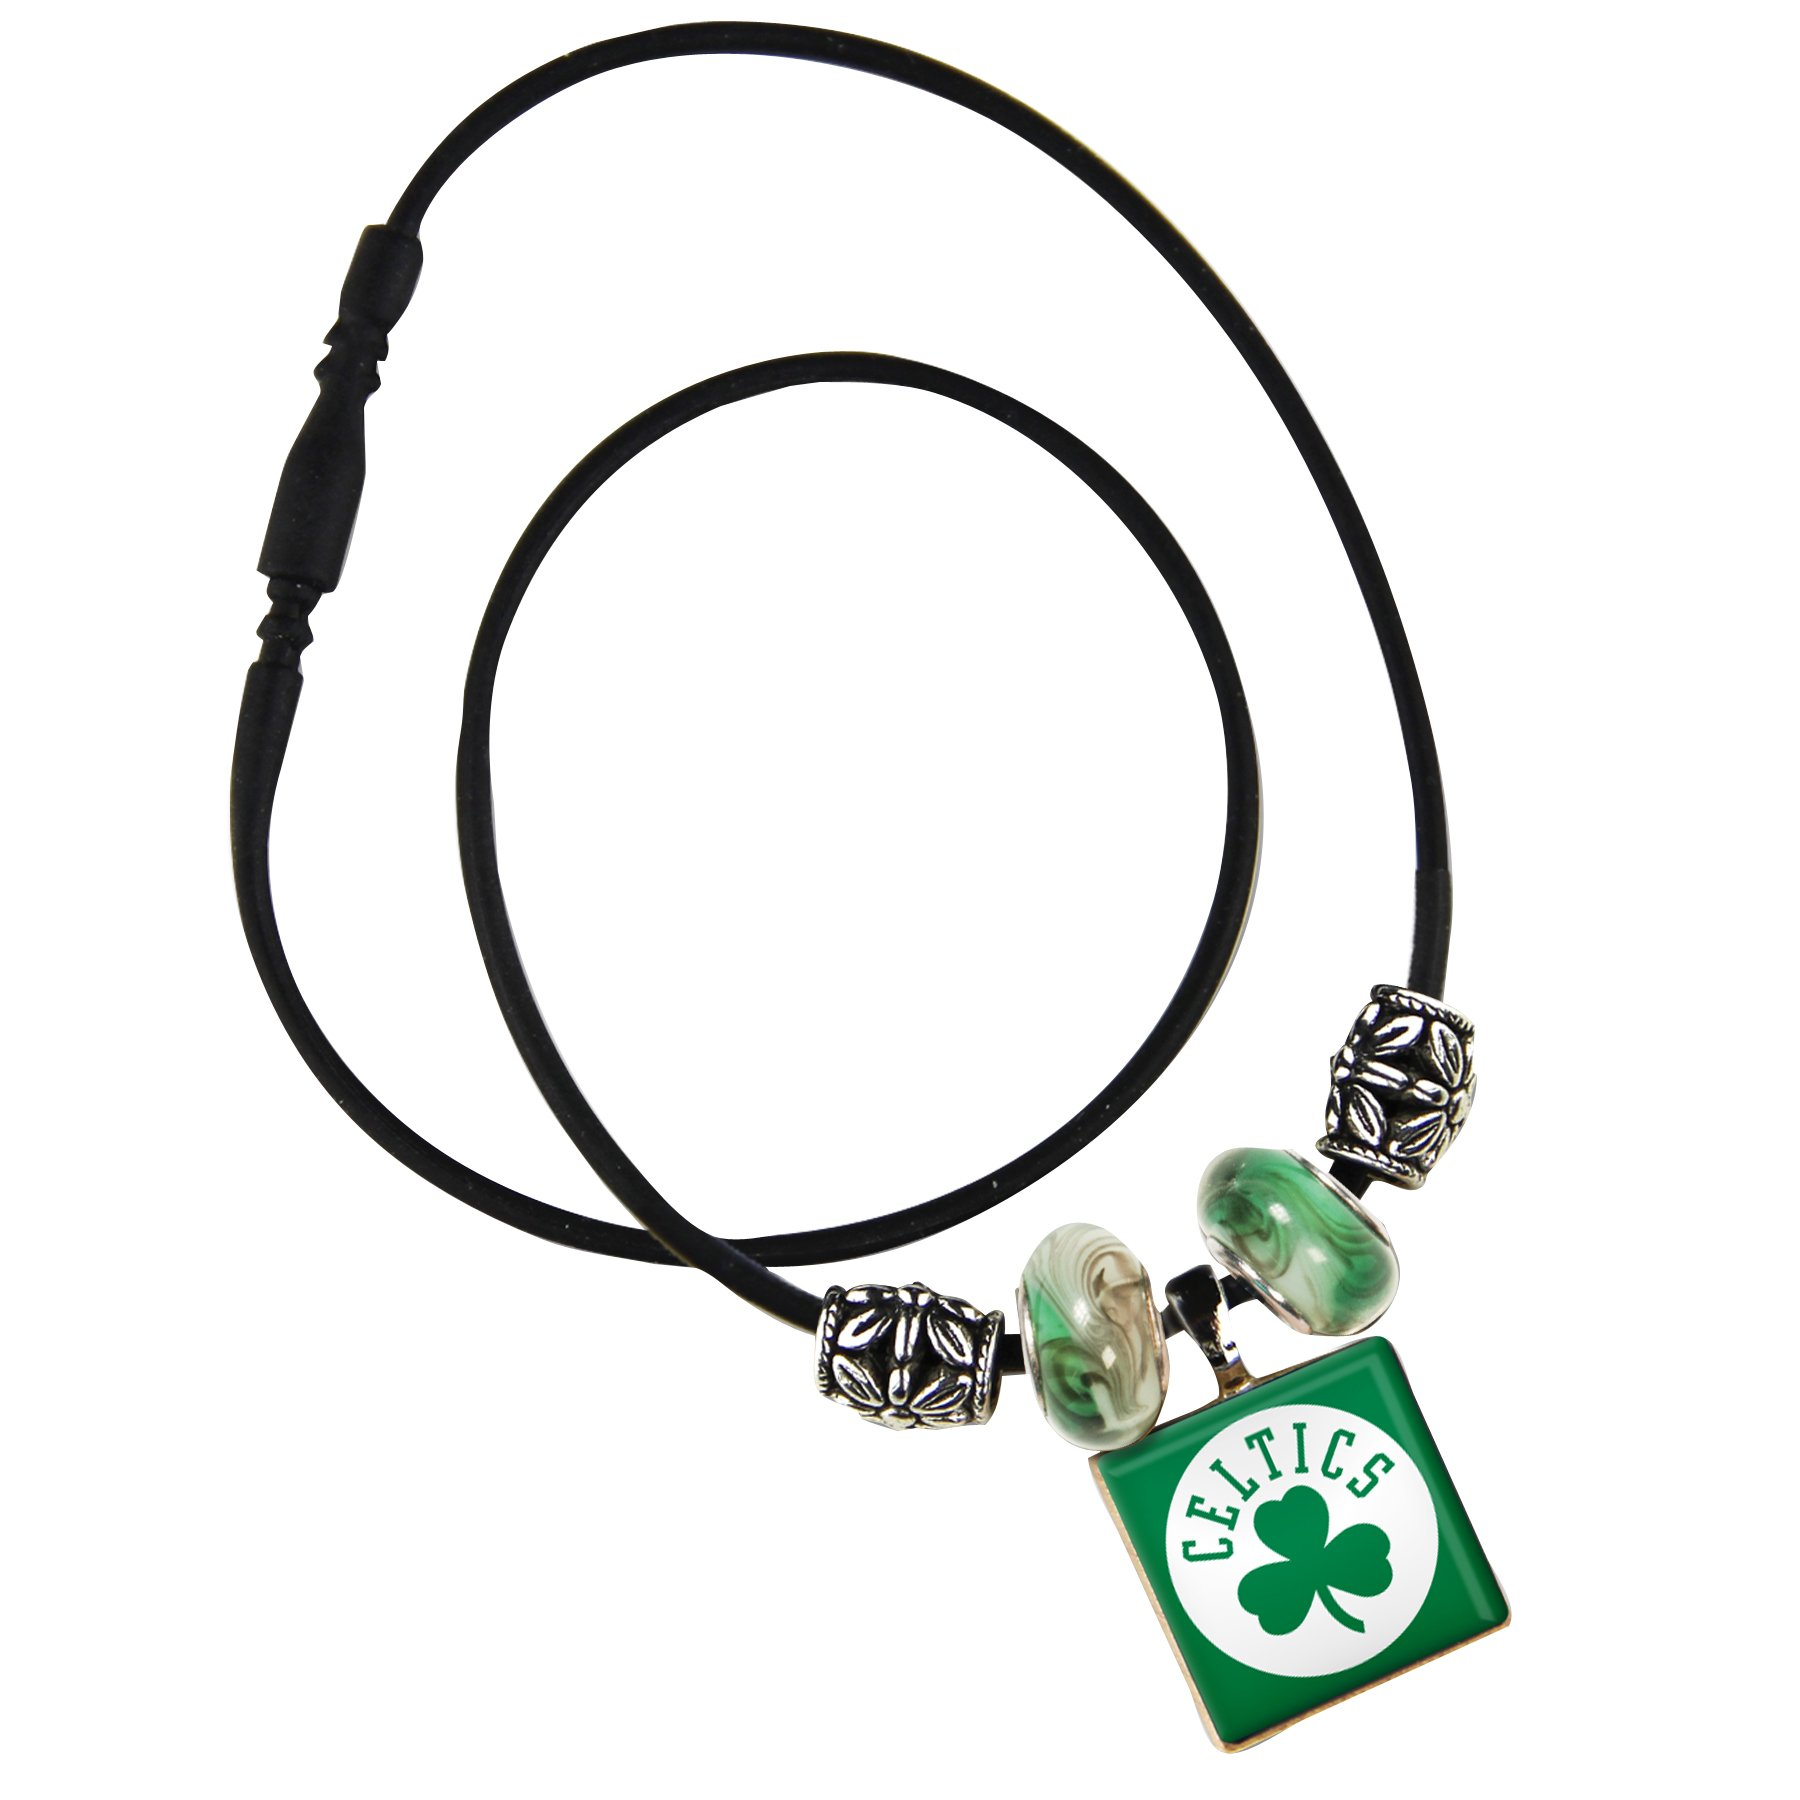 WinCraft NBA Boston Celtics Life Tiles Necklace with Beads